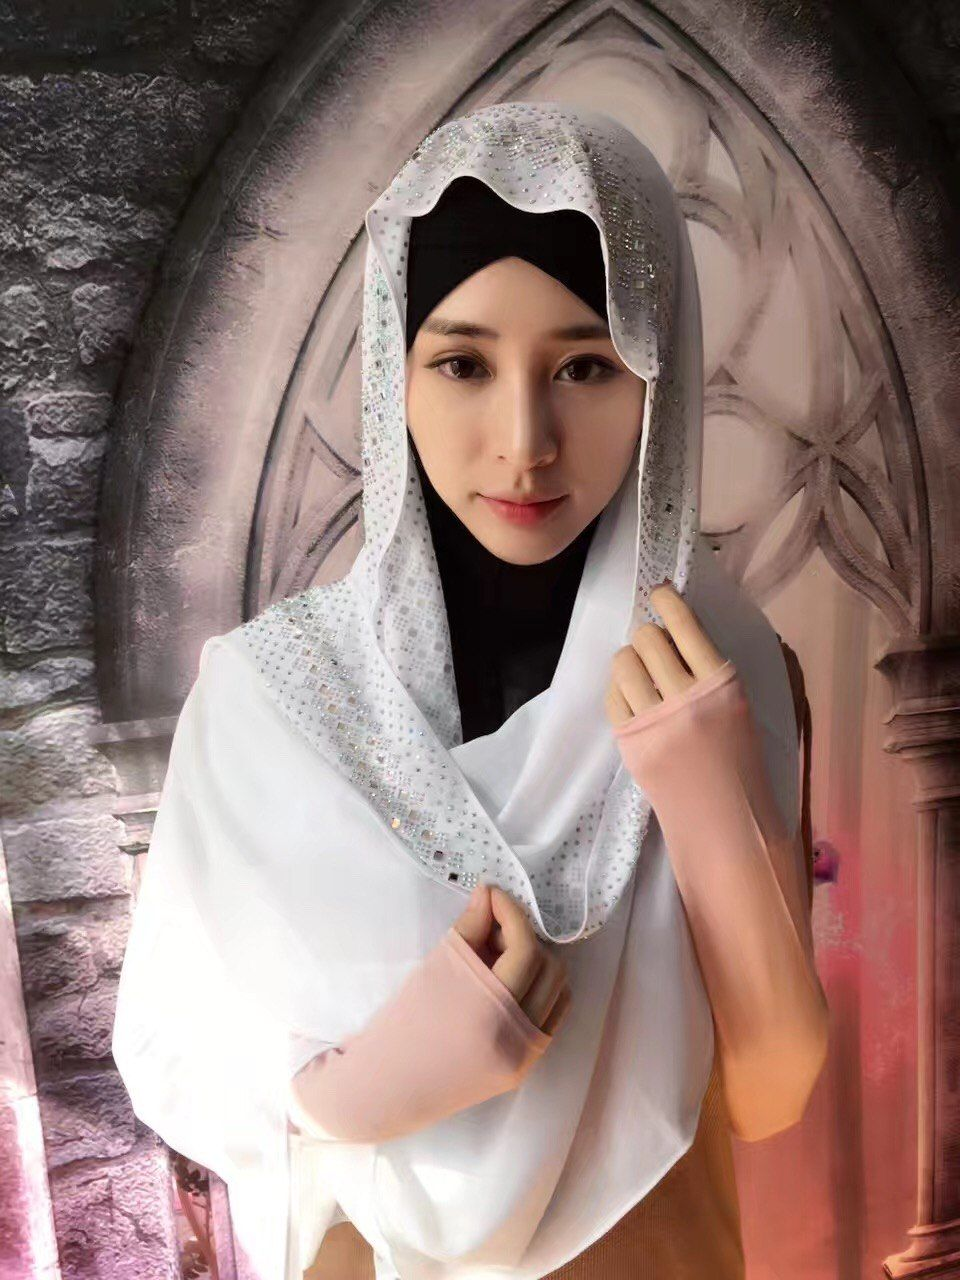 9d7cc7c903 Women Ladies Long Scarf Grilling Shawls Head Wrap Muslim Islamic Headscarf  Sequins Full Cover Scarf Hijabs Turban Middle East